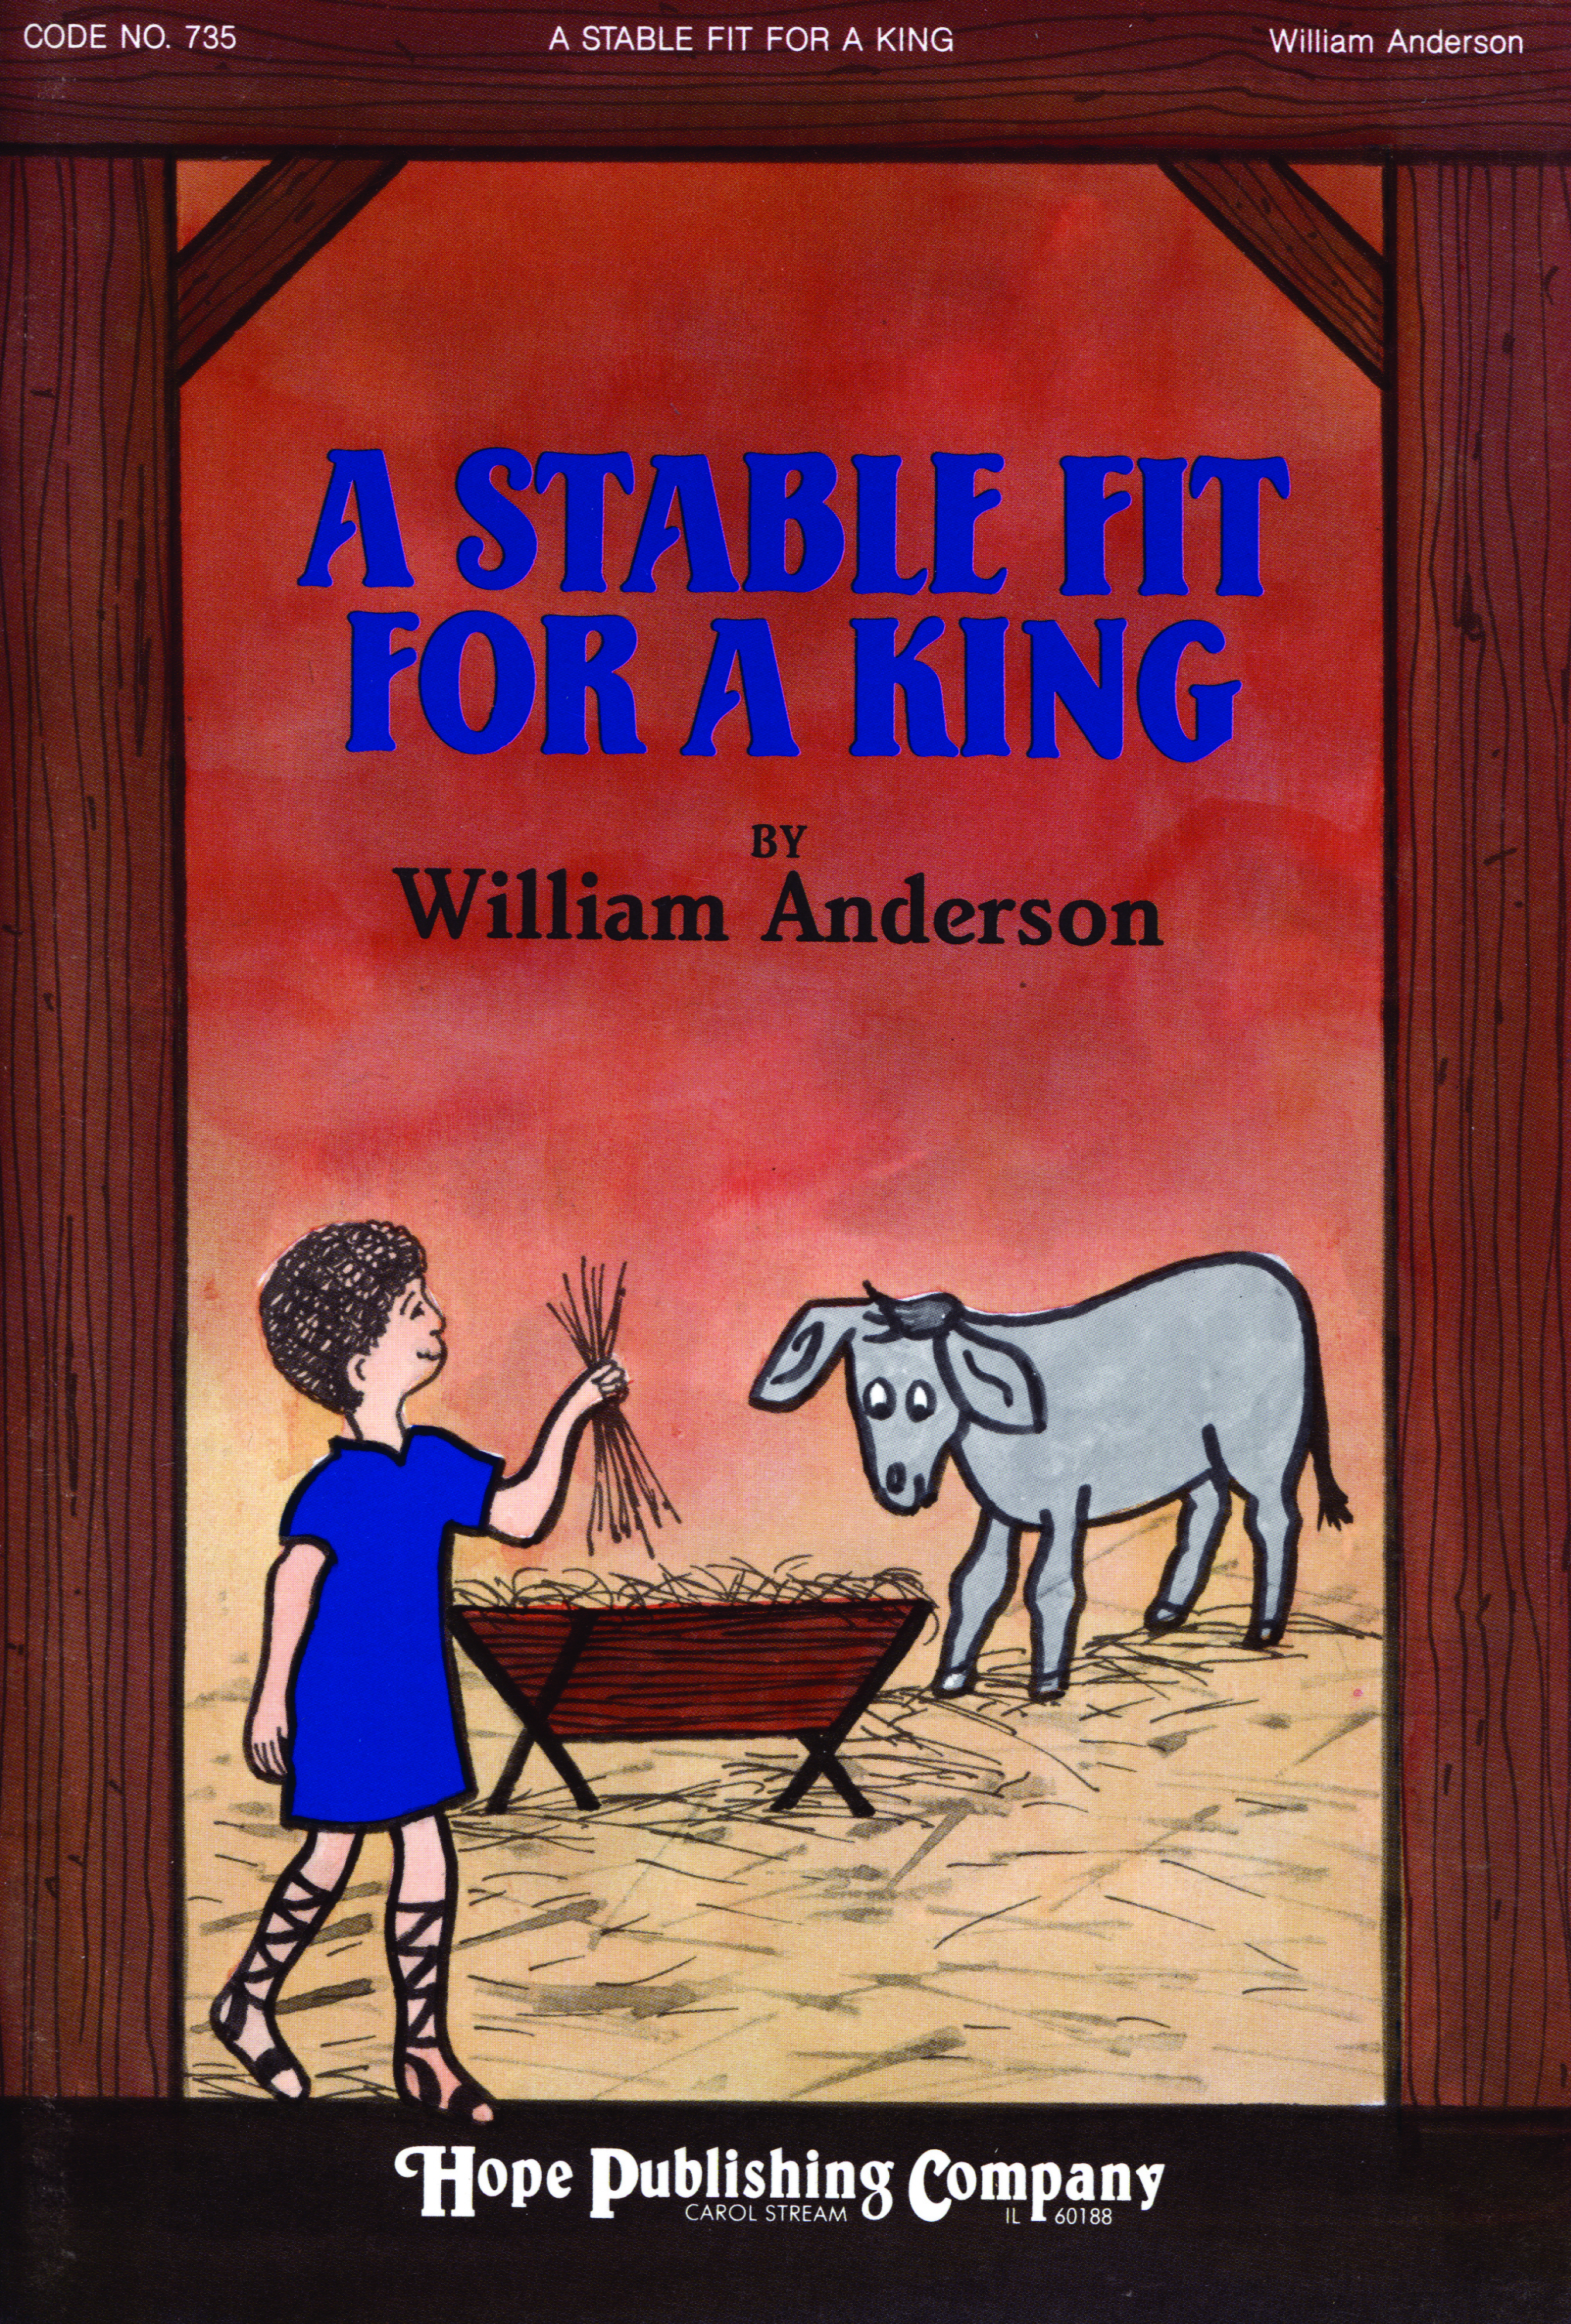 Stable Fit for a King A - Score Cover Image